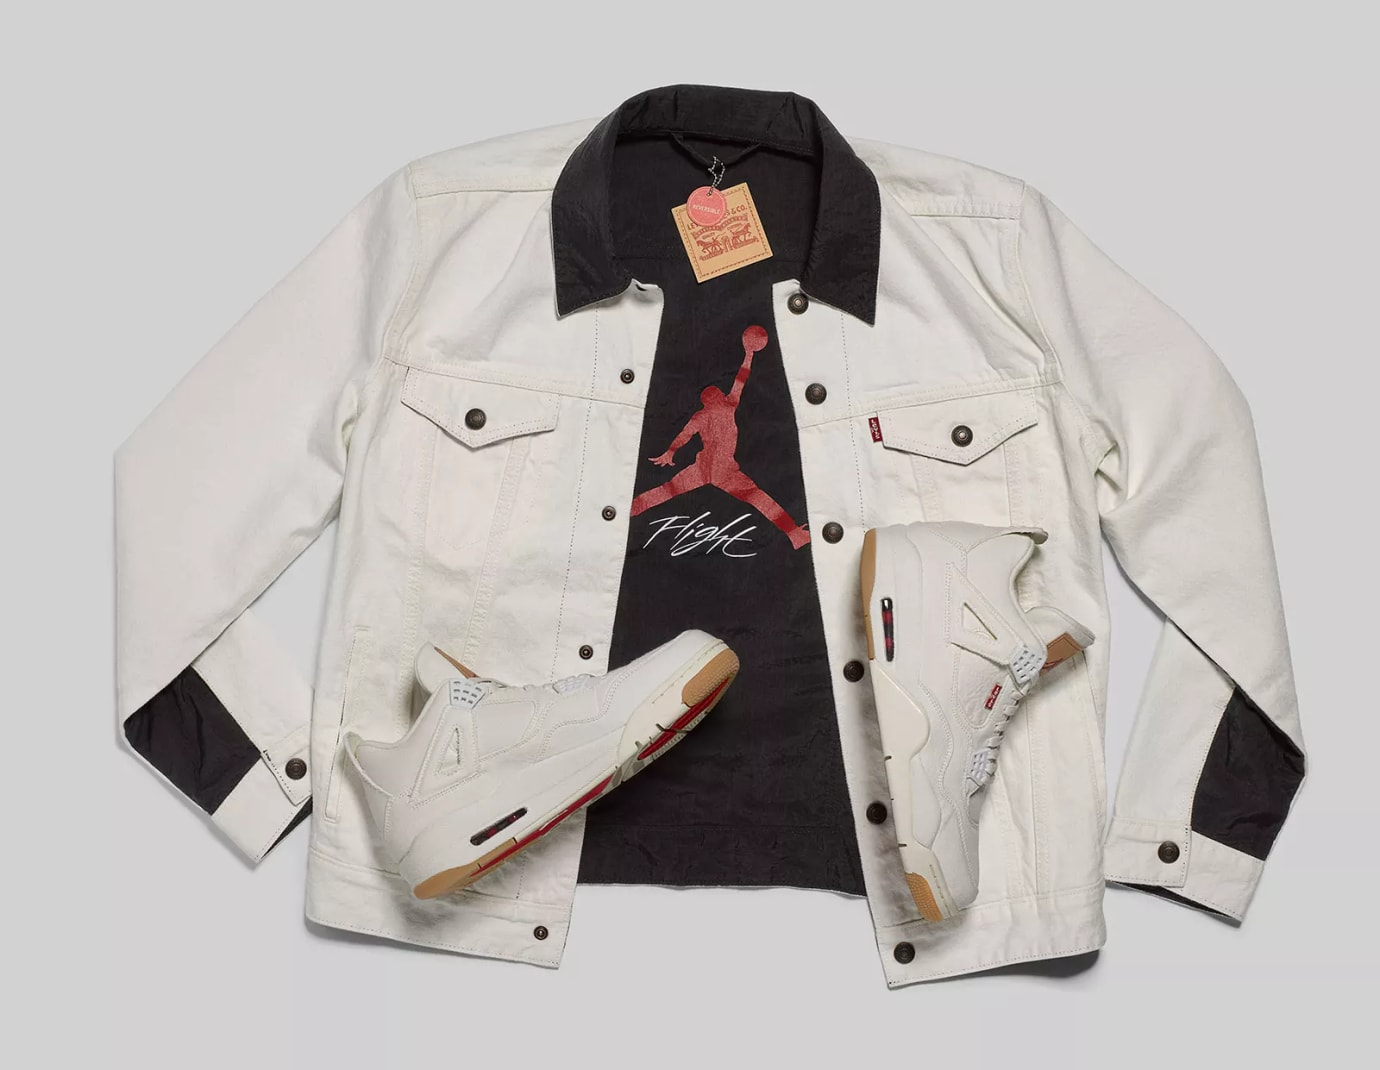 Levi's x Air Jordan 4 'White' AO2571-100 (Jacket)